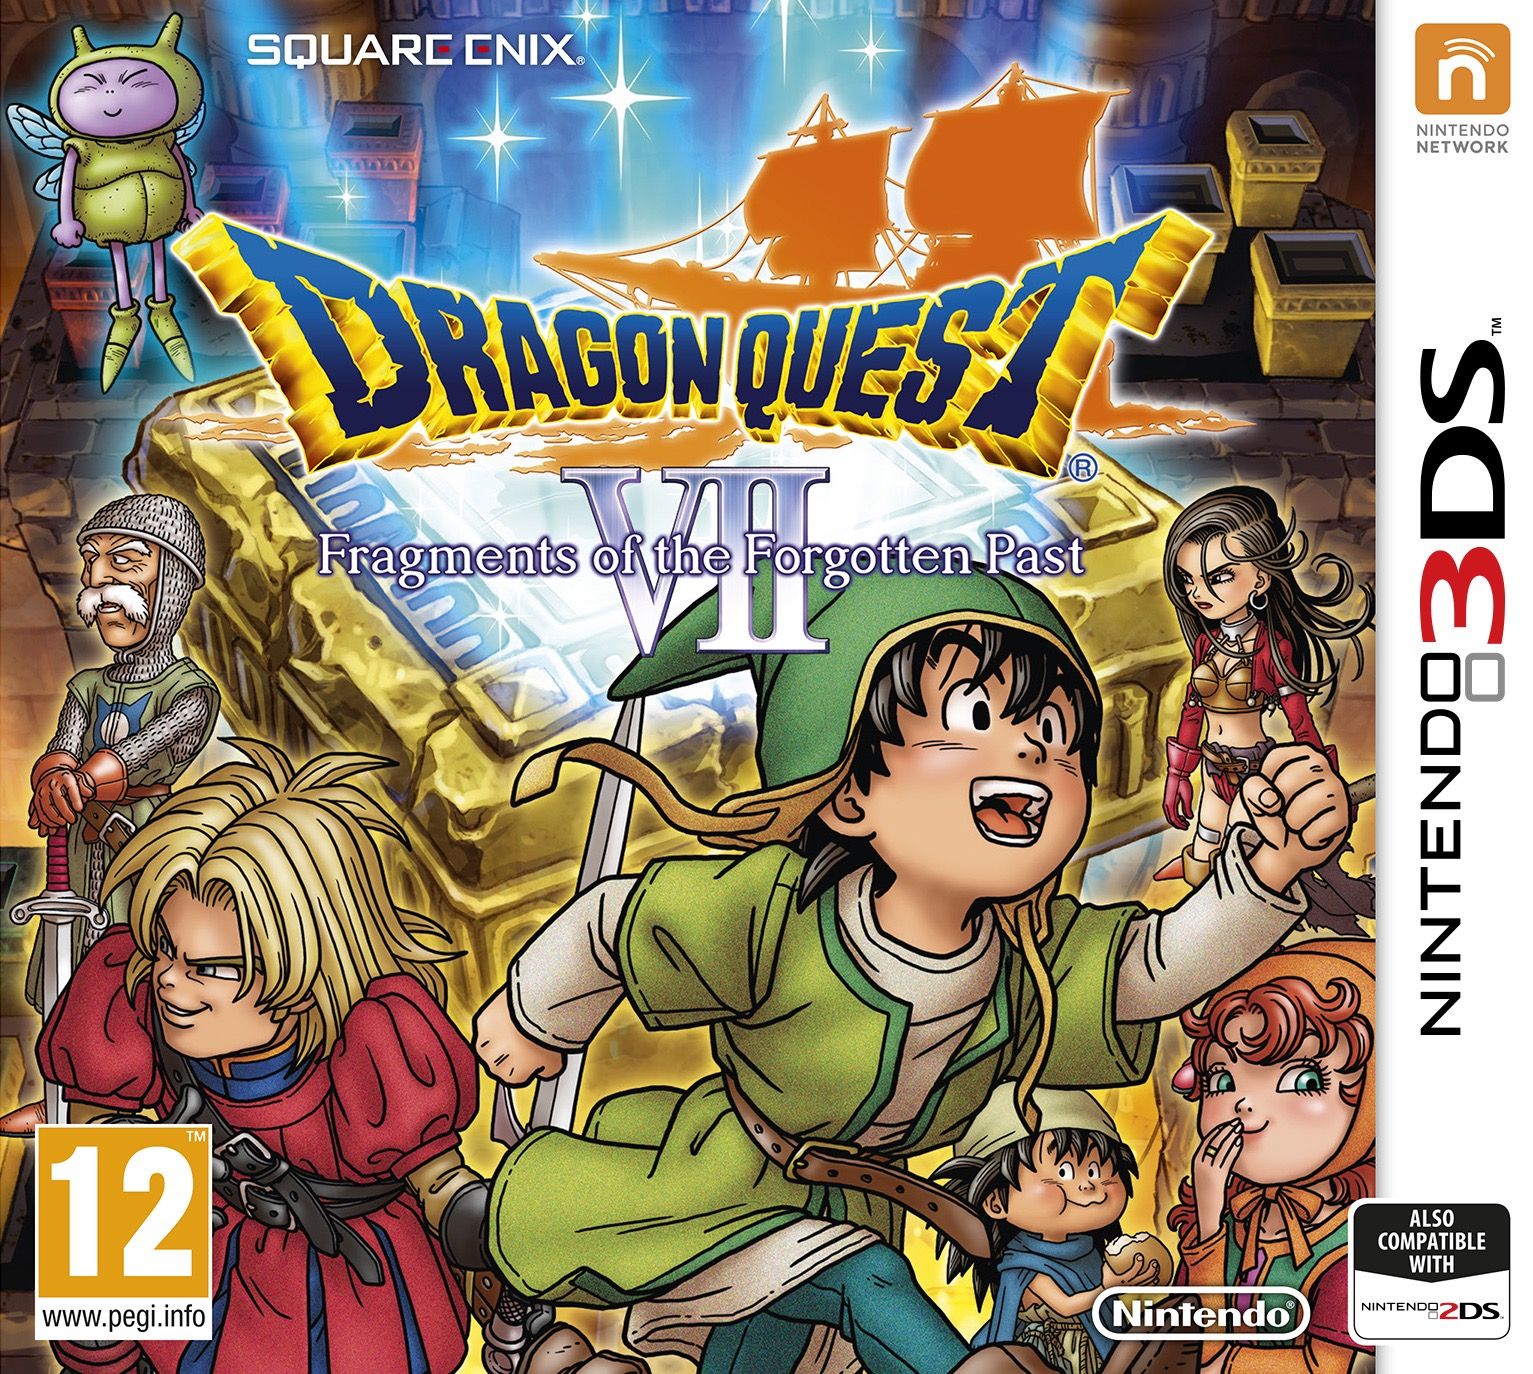 Dragon Quest VII is too long, but that's OK